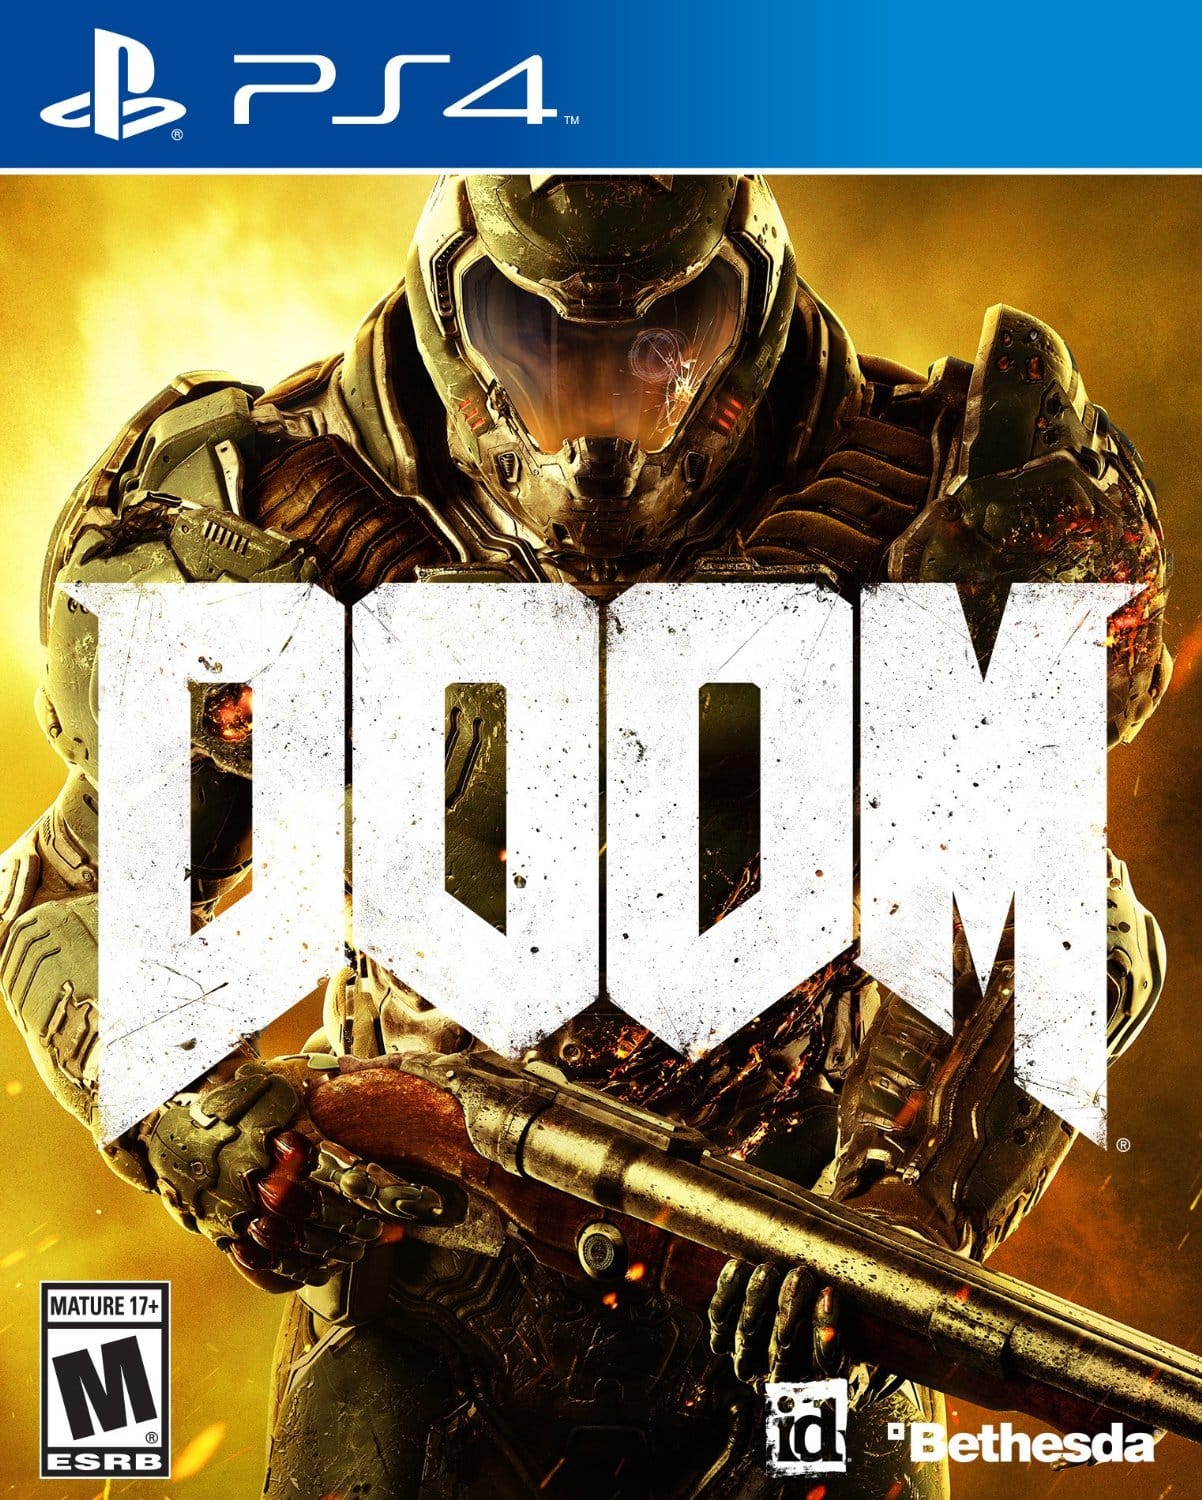 DooM (PS4 or Xbox One) on Amazon for $19.99 plus tax, Prime Eligible